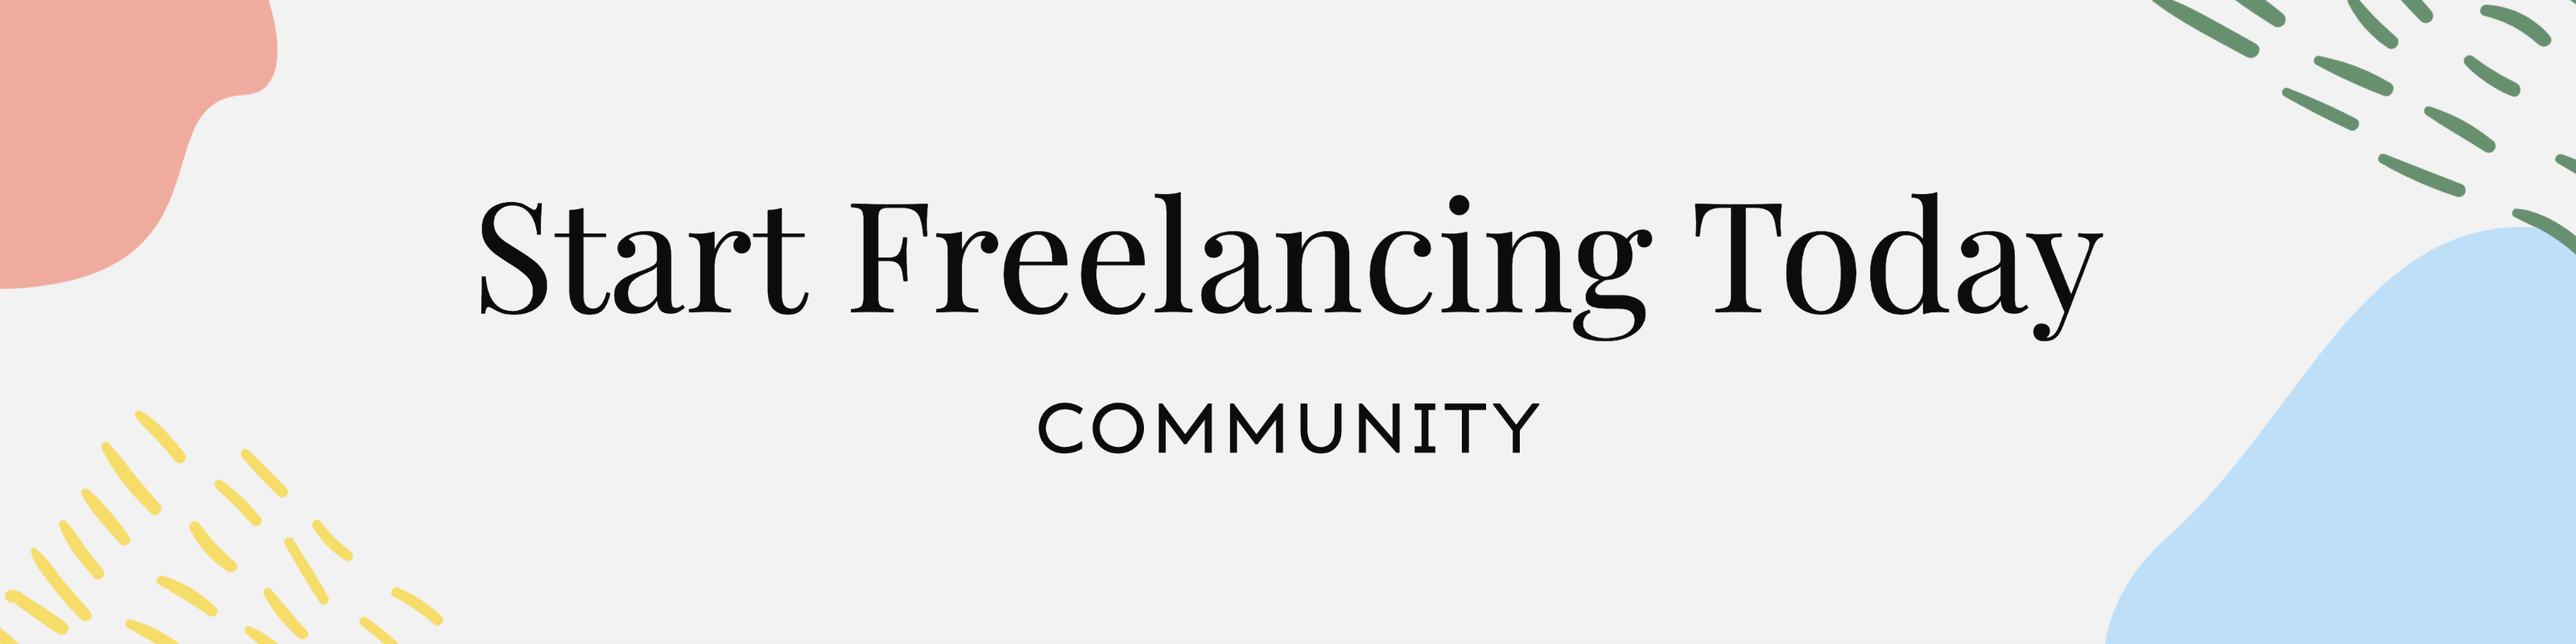 Start Freelancing Today Community